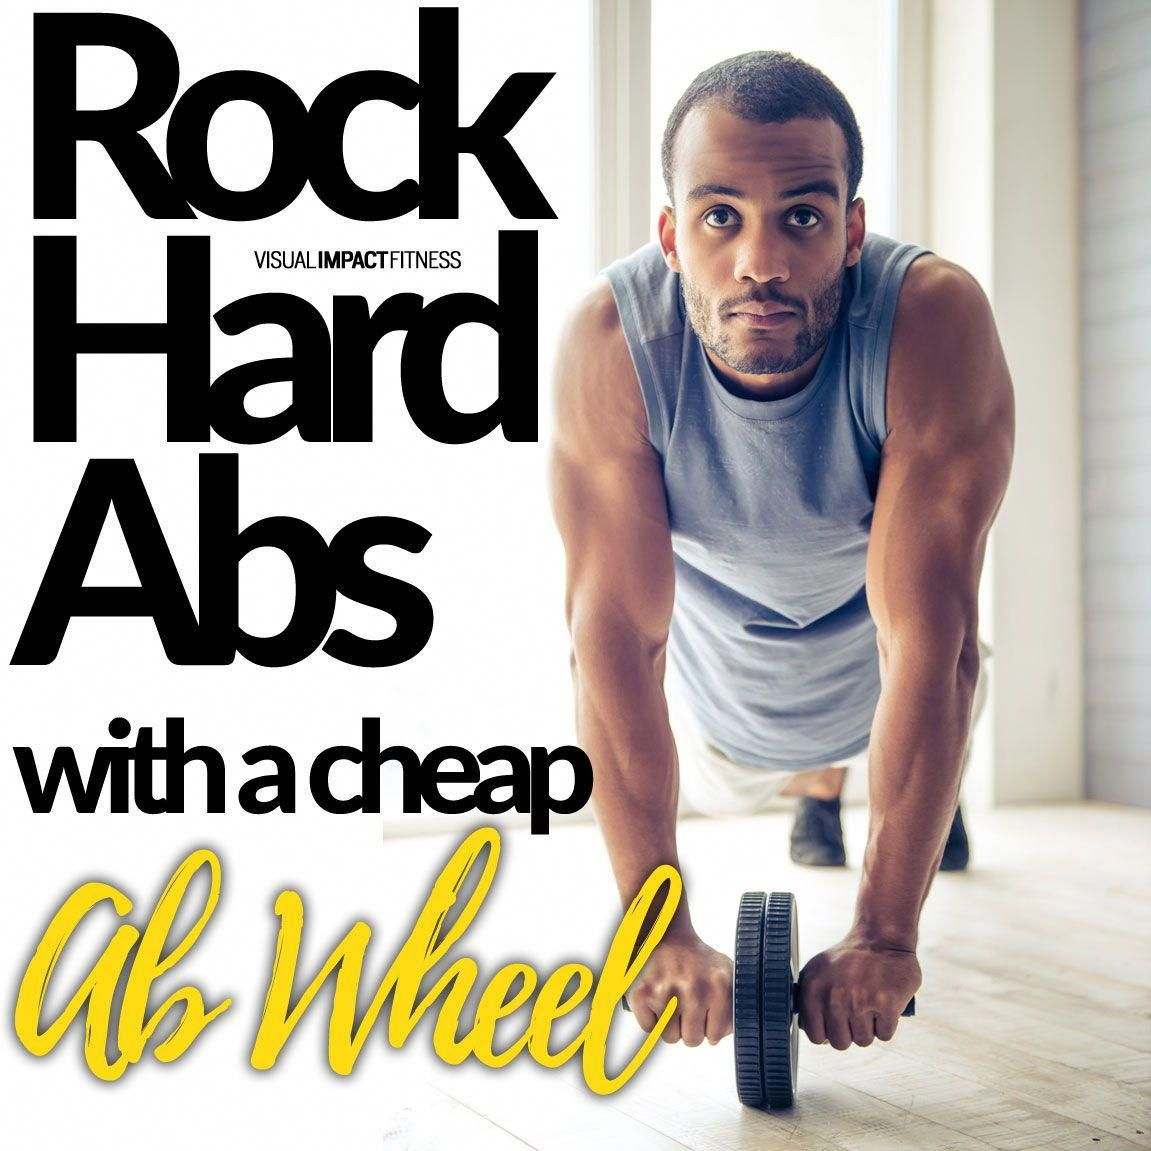 The cheap ab wheel is actually one of the most effective